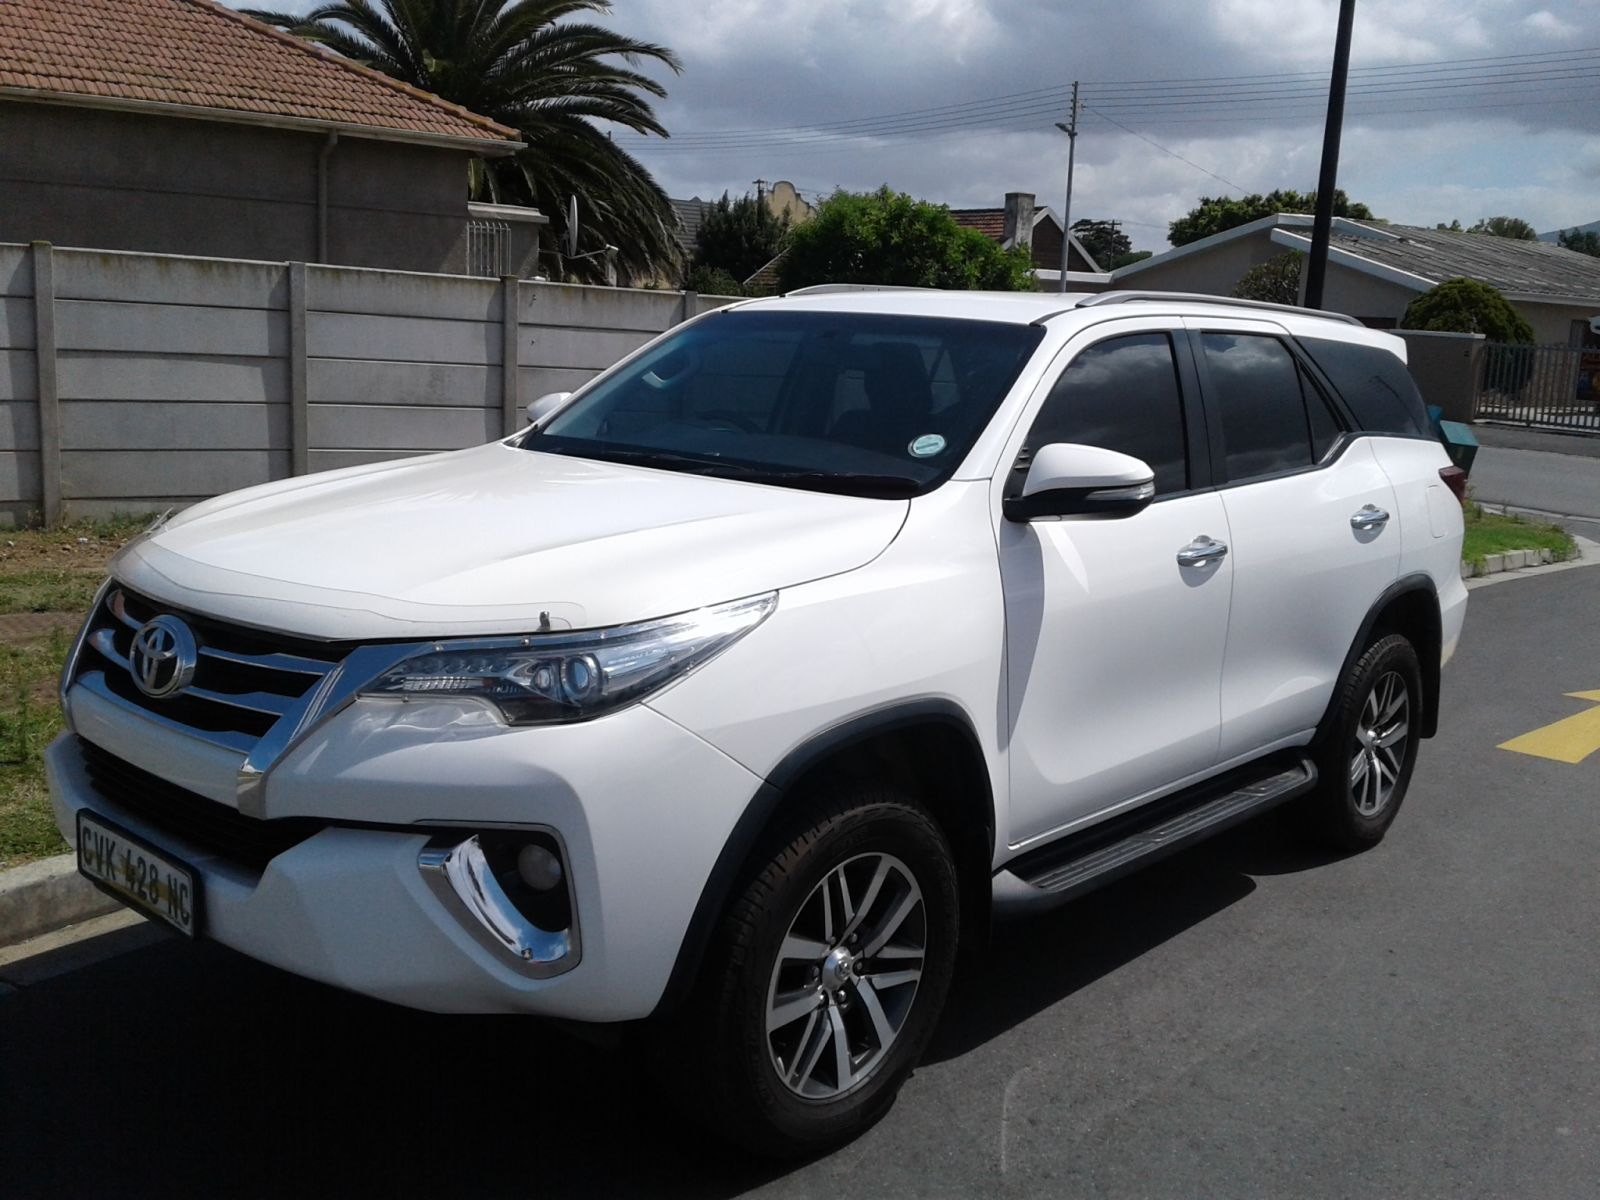 FORTUNER 2.8 GD-6 4X4 A/T